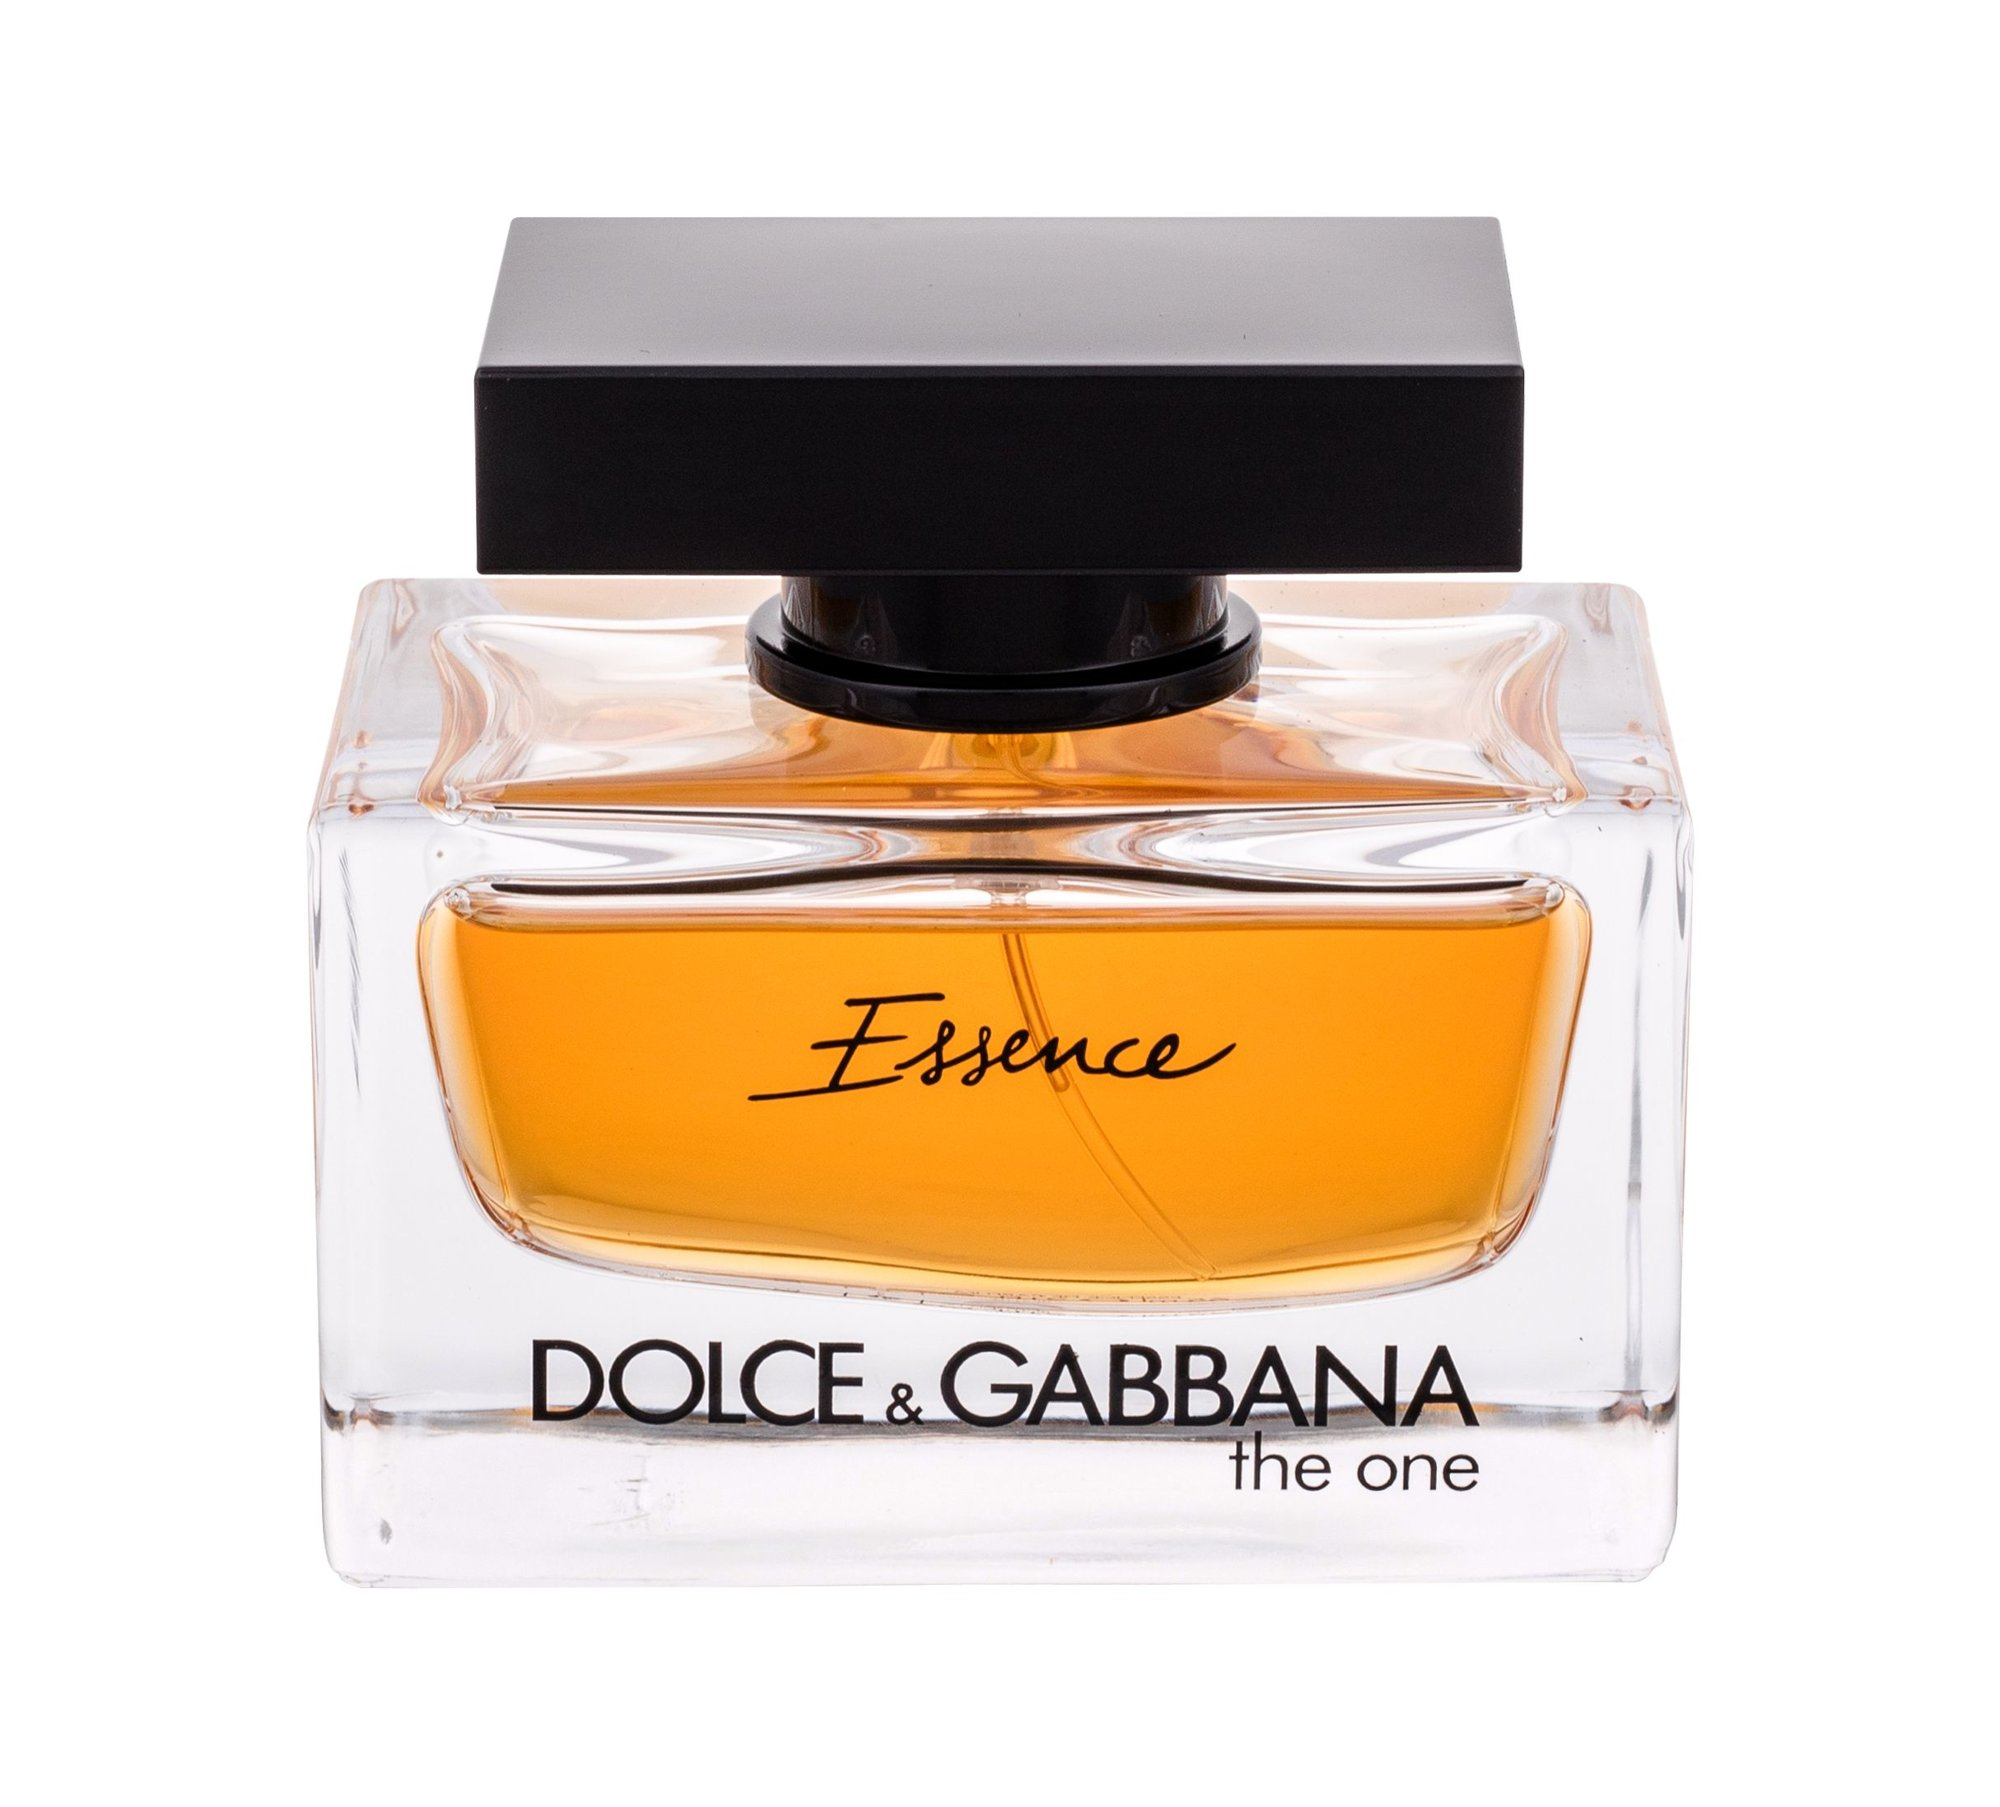 Dolce&Gabbana The One Essence Eau de Parfum 65ml